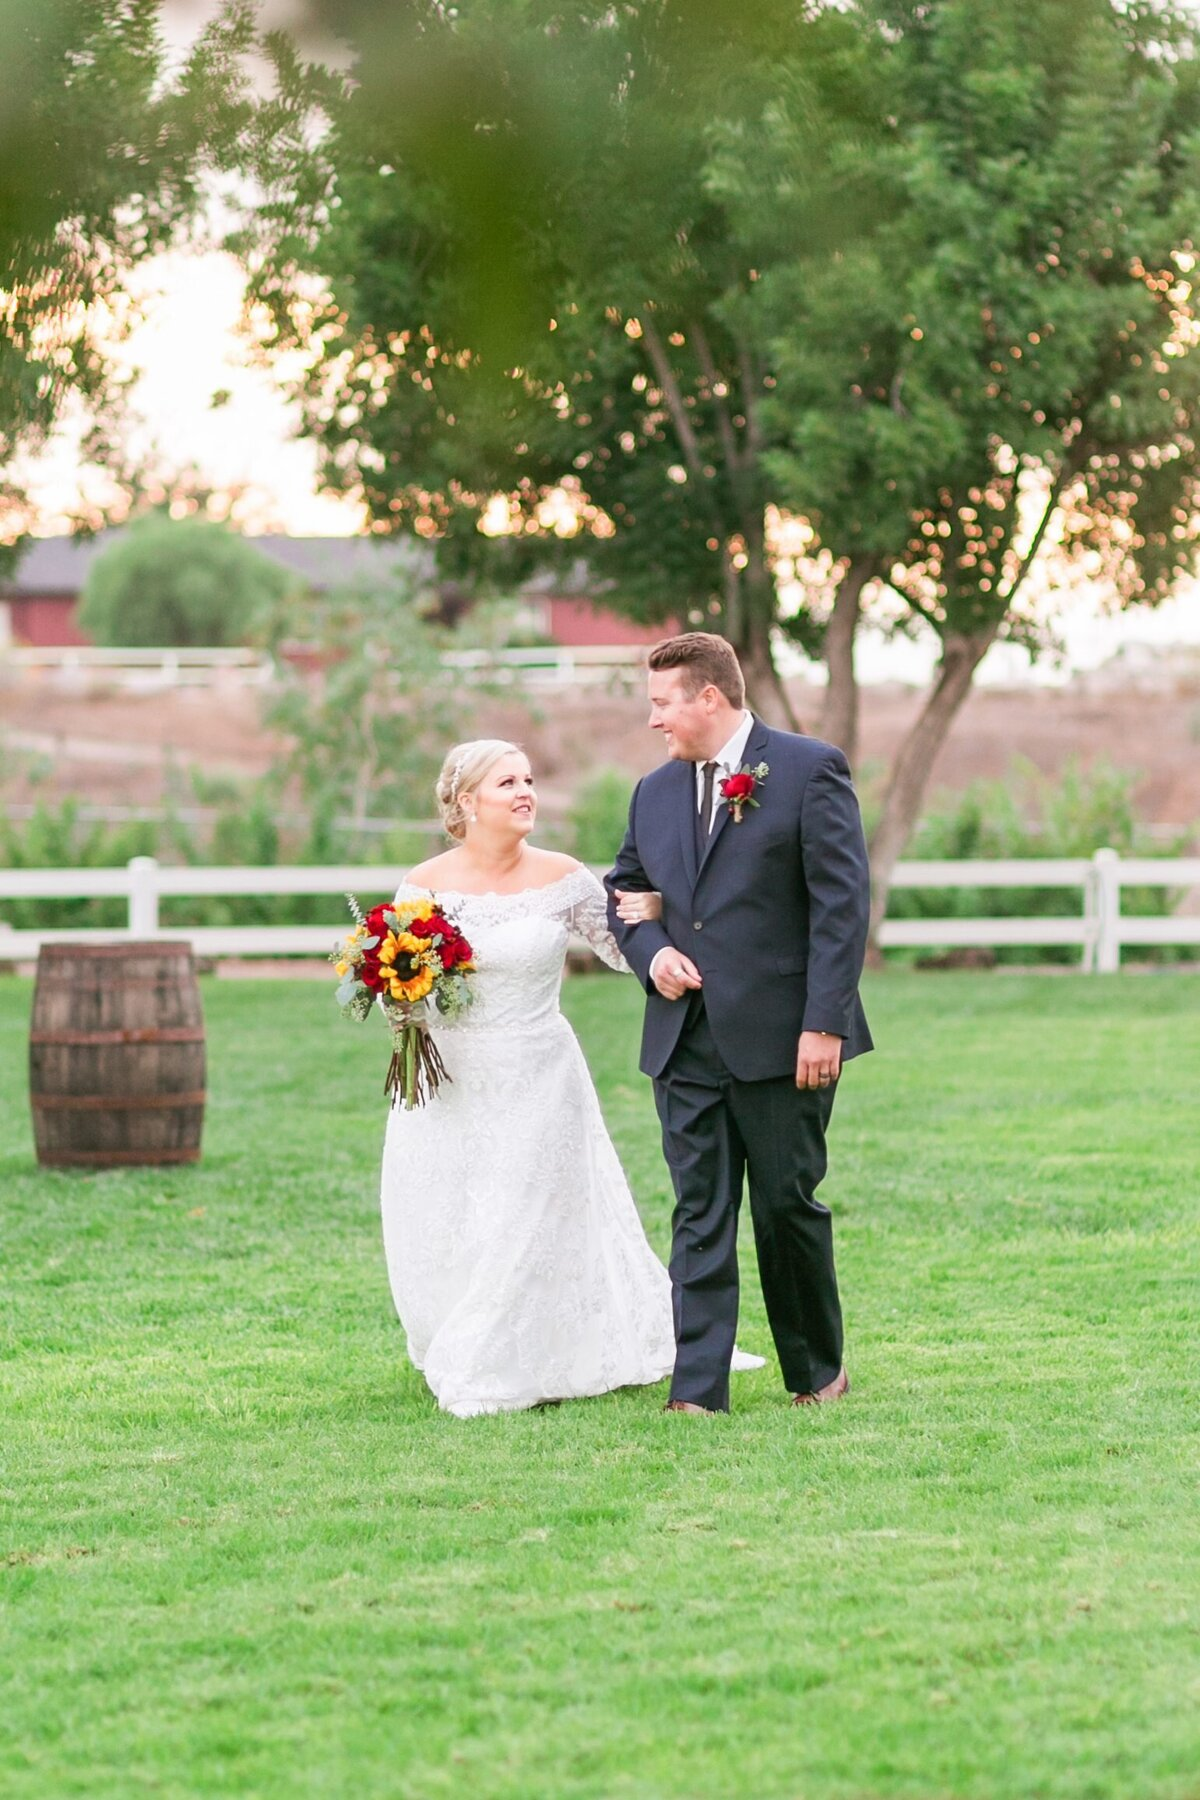 Kelli-Bee-Photography-Gallery-Farm-Southern-CA-Norco-Rustic-Wedding-Luxury-Lifestyle-Photographer-Lauren-Ben-0051